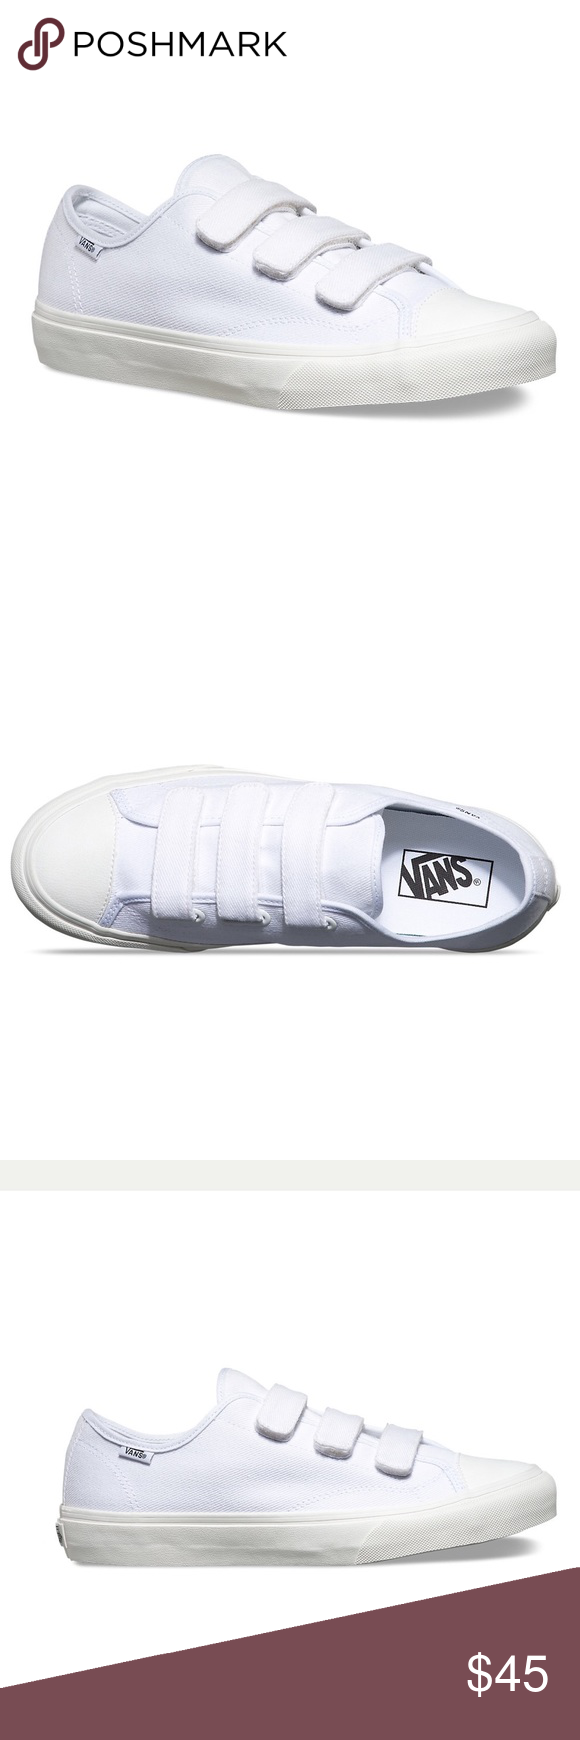 Vans Prison Issue Vans Prison Issue. Velcro straps. White canvas with white  leather cap toe. Unisex. Men s size 5.5 Women s size 7. f0b362e40